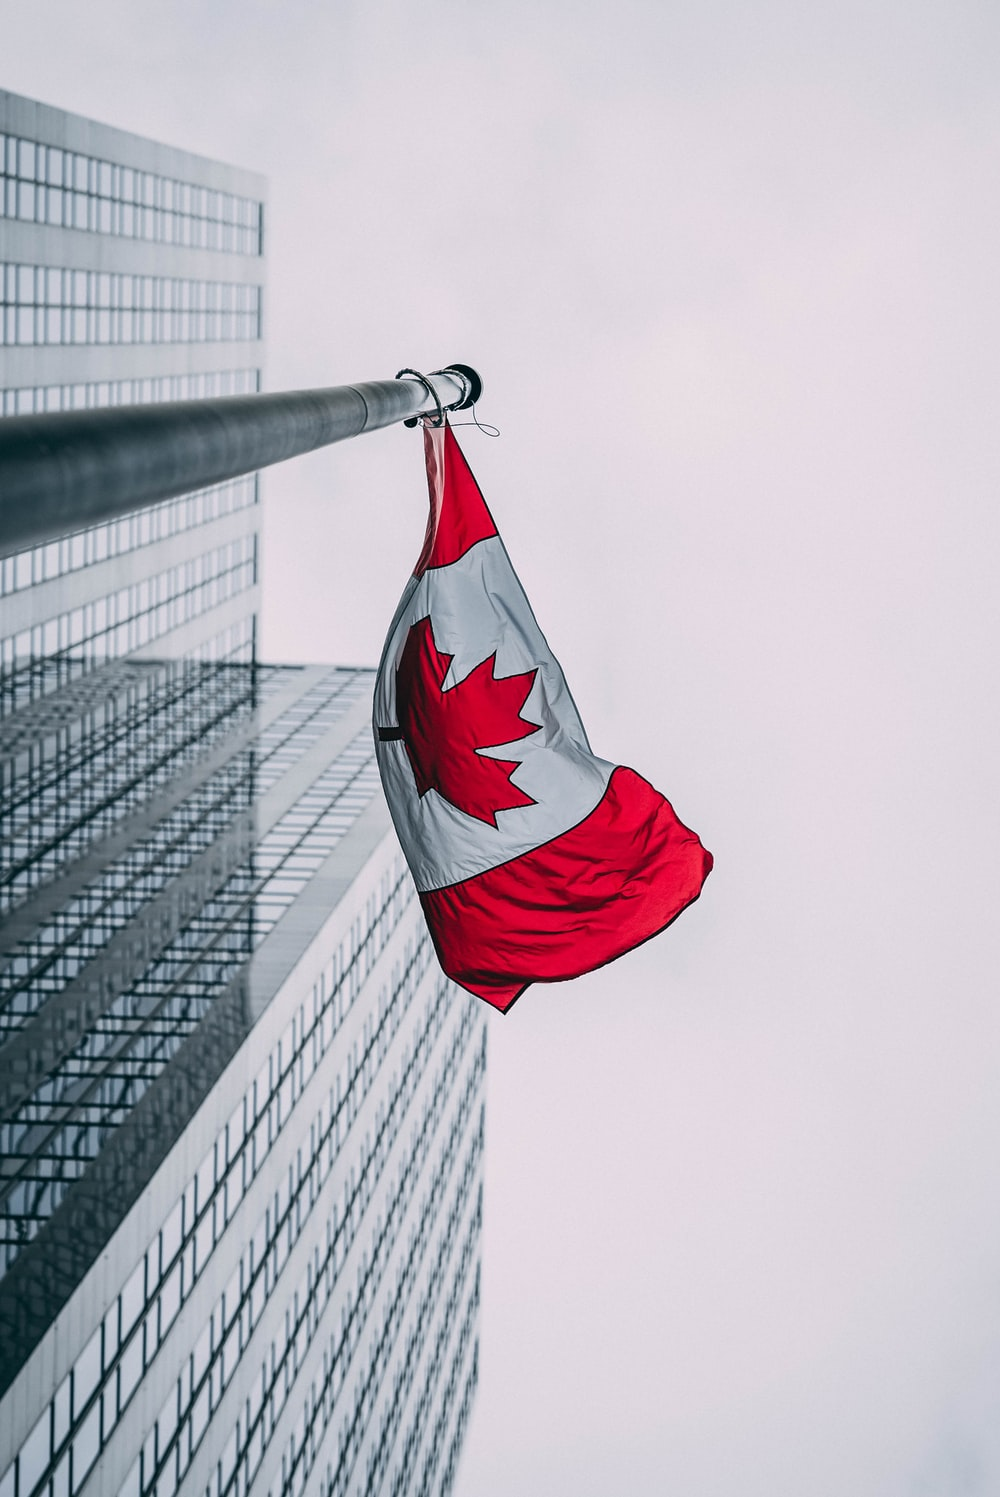 low-angle photo of Canada flag